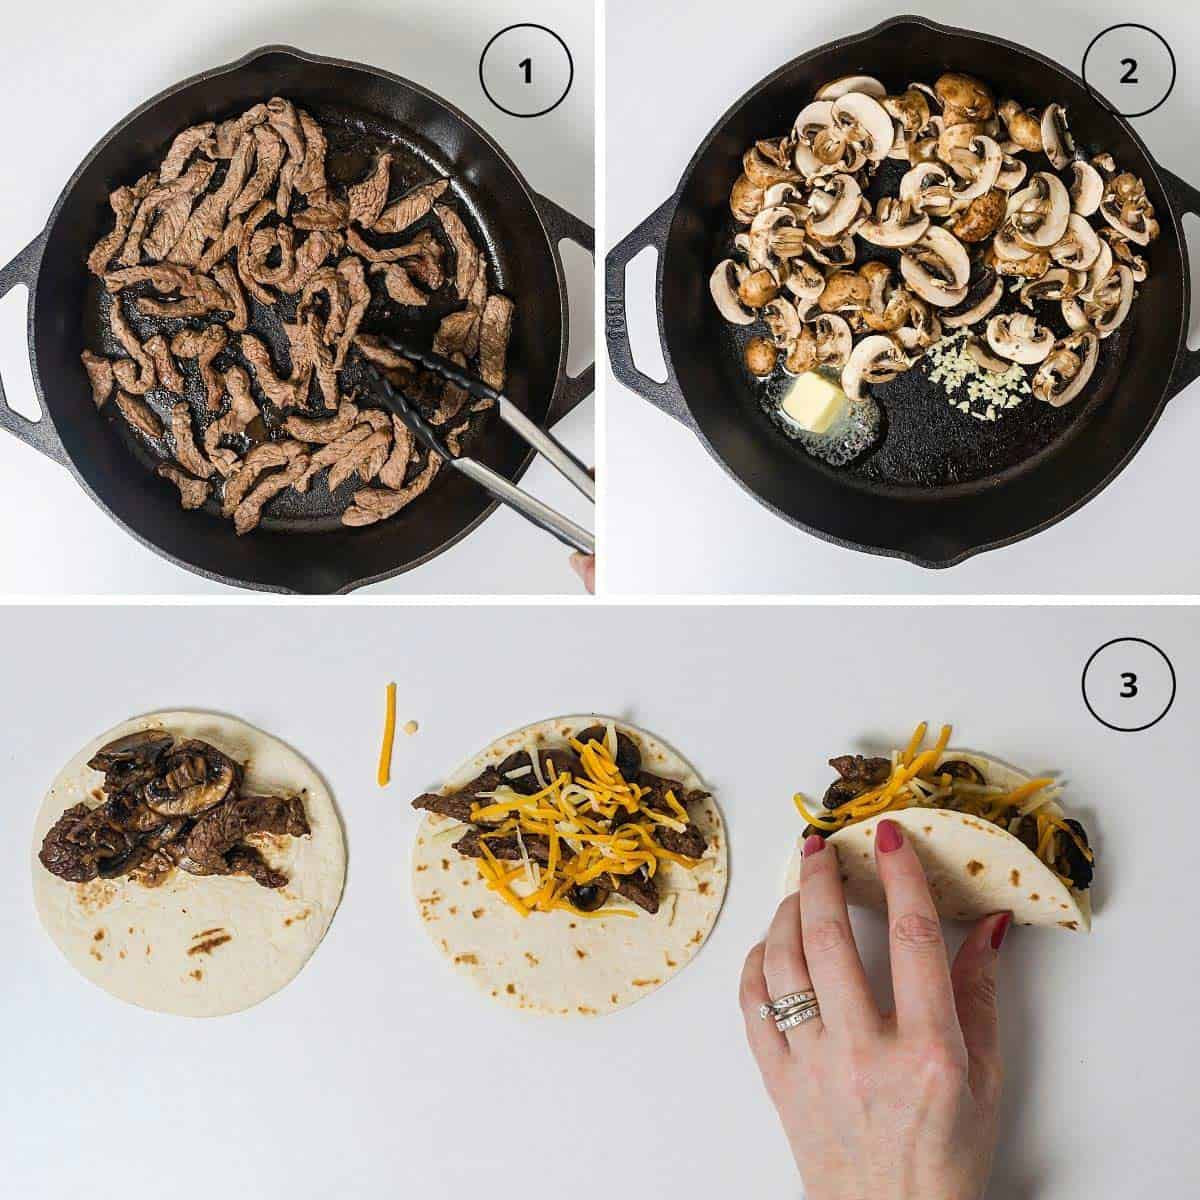 Beef steak strips in a cast-iron skilled, sliced mushrooms in a skillet, and a person assembling quesadillas in steps.